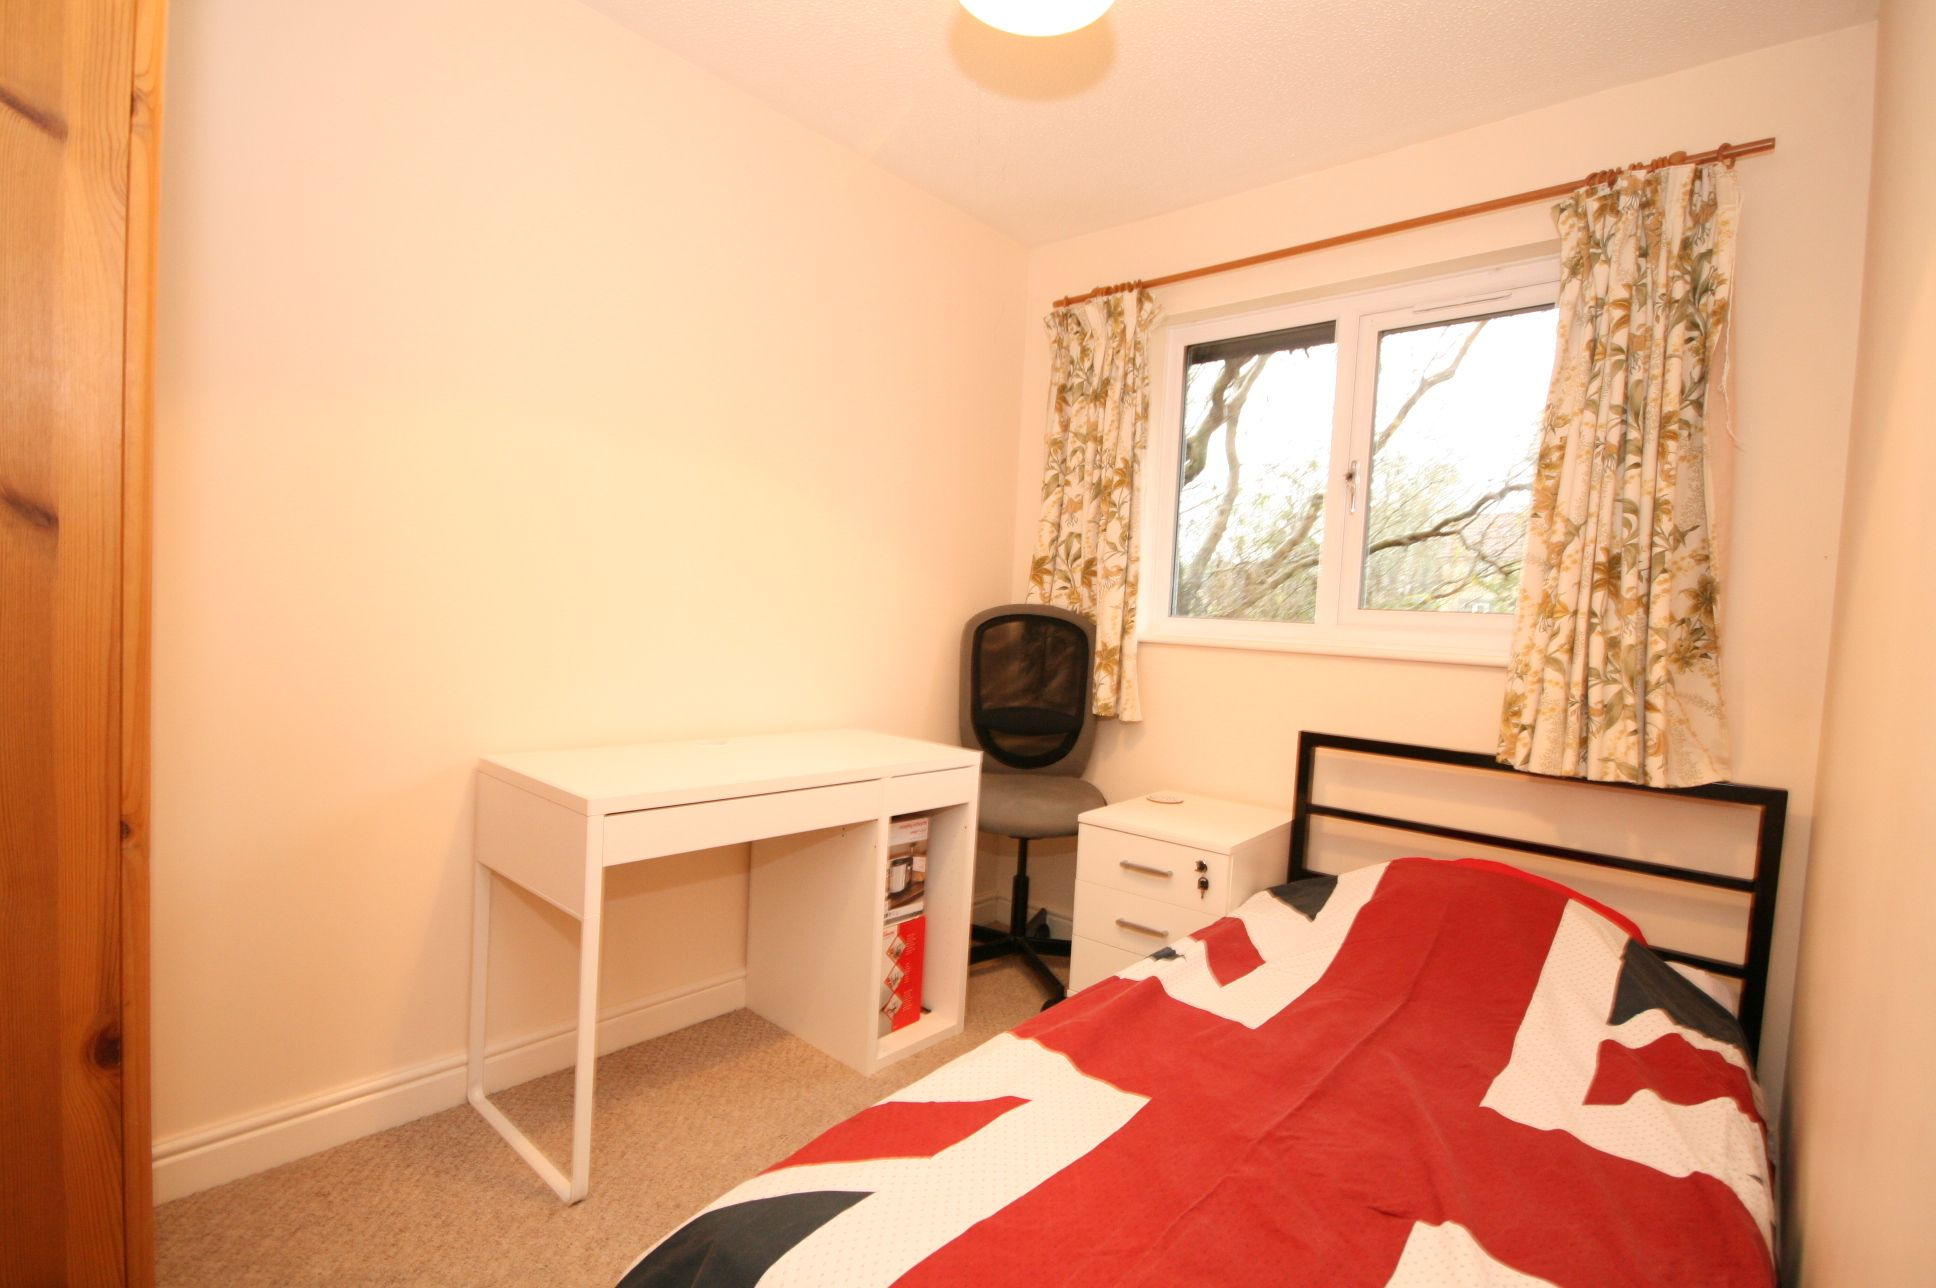 2 Bedroom End Terraced House For Sale - Bedroom 2